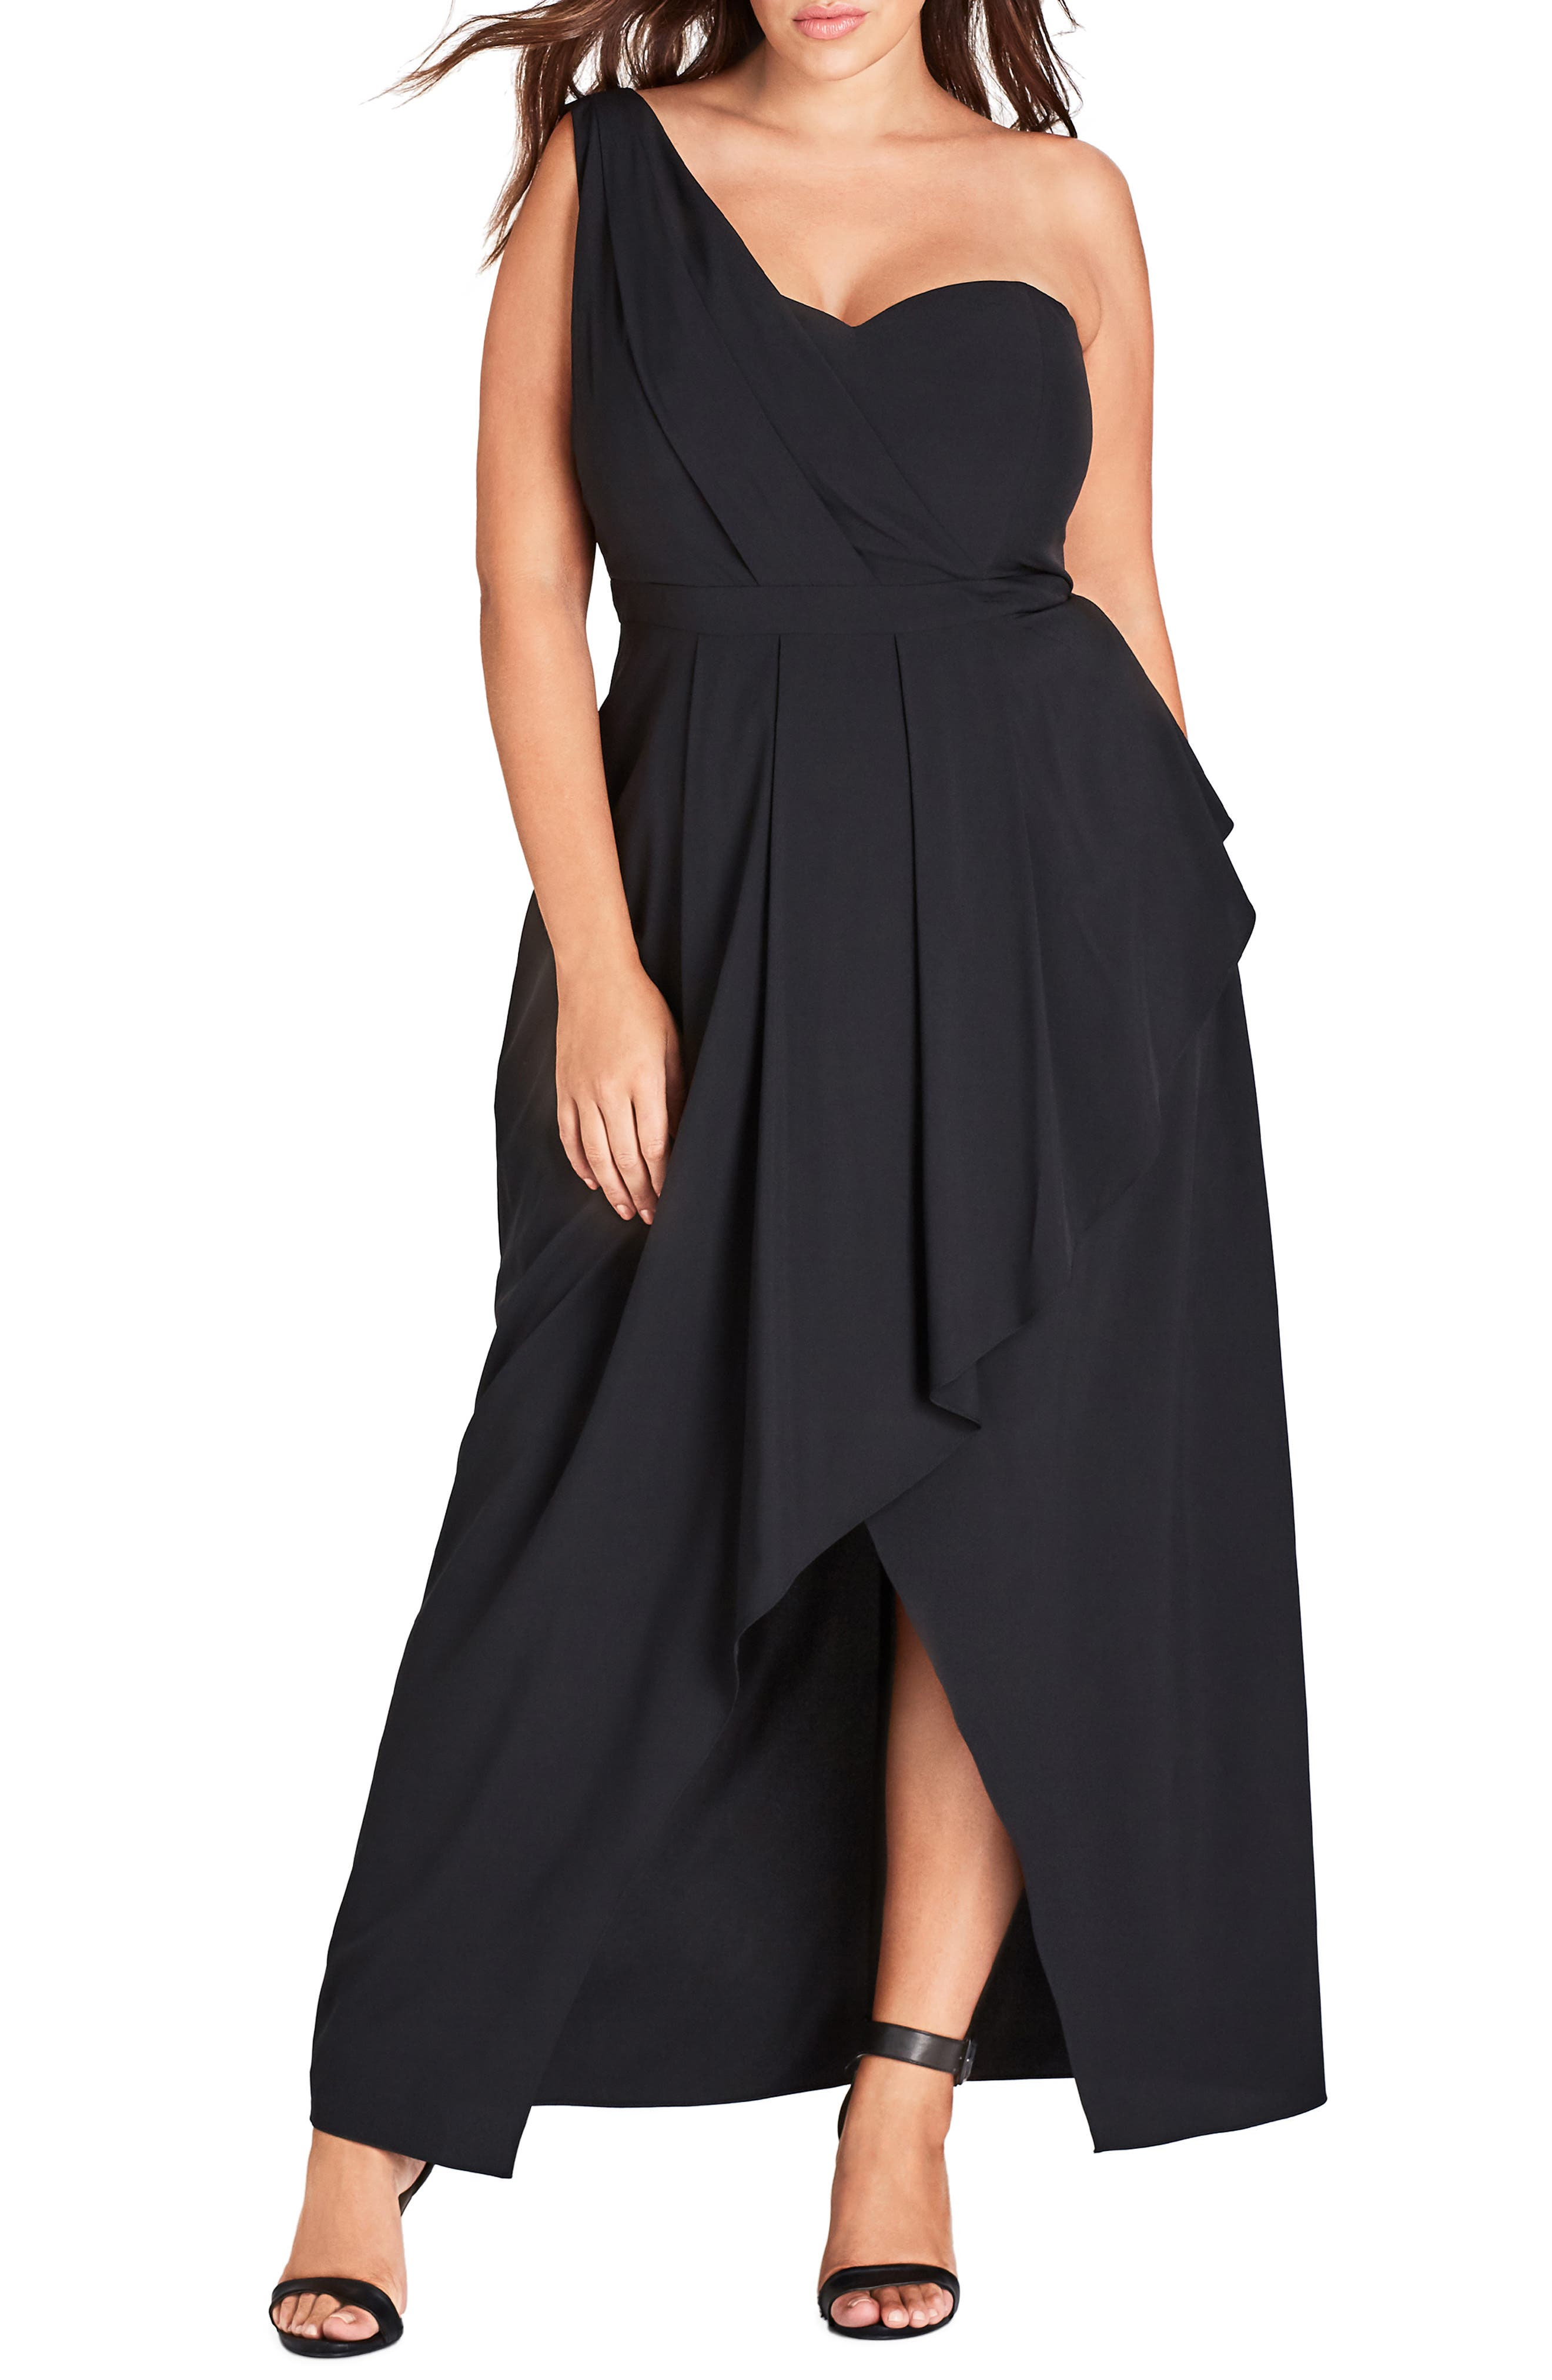 Allure One-Shoulder Maxi Dress,                             Main thumbnail 1, color,                             BLACK